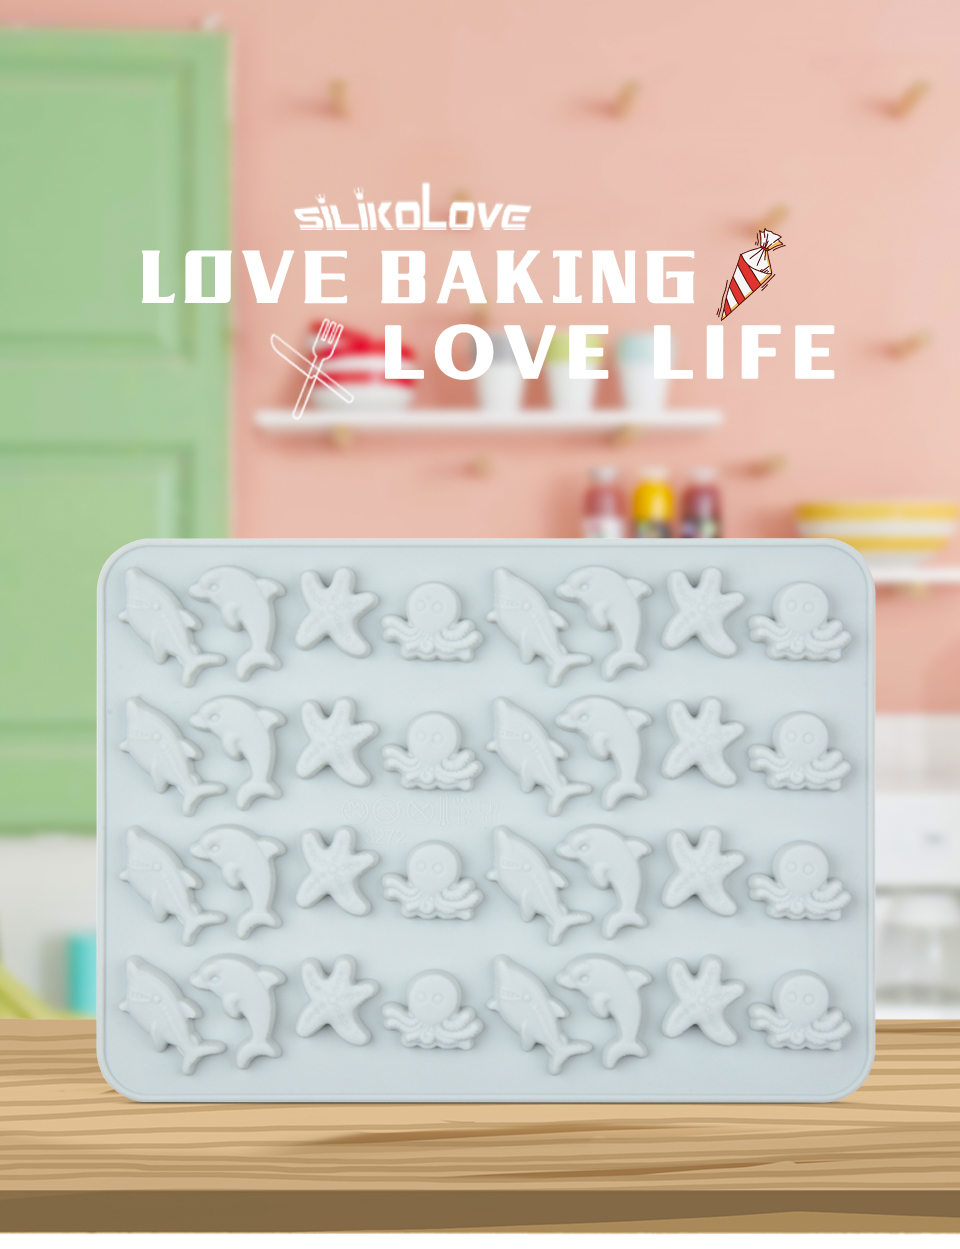 1SILIKOLOVE Fondant Cake Decorating Tools 3D Silicone Mold Miniature Ocean Candy Mold Whale Starfish Octopus Chocolate mould